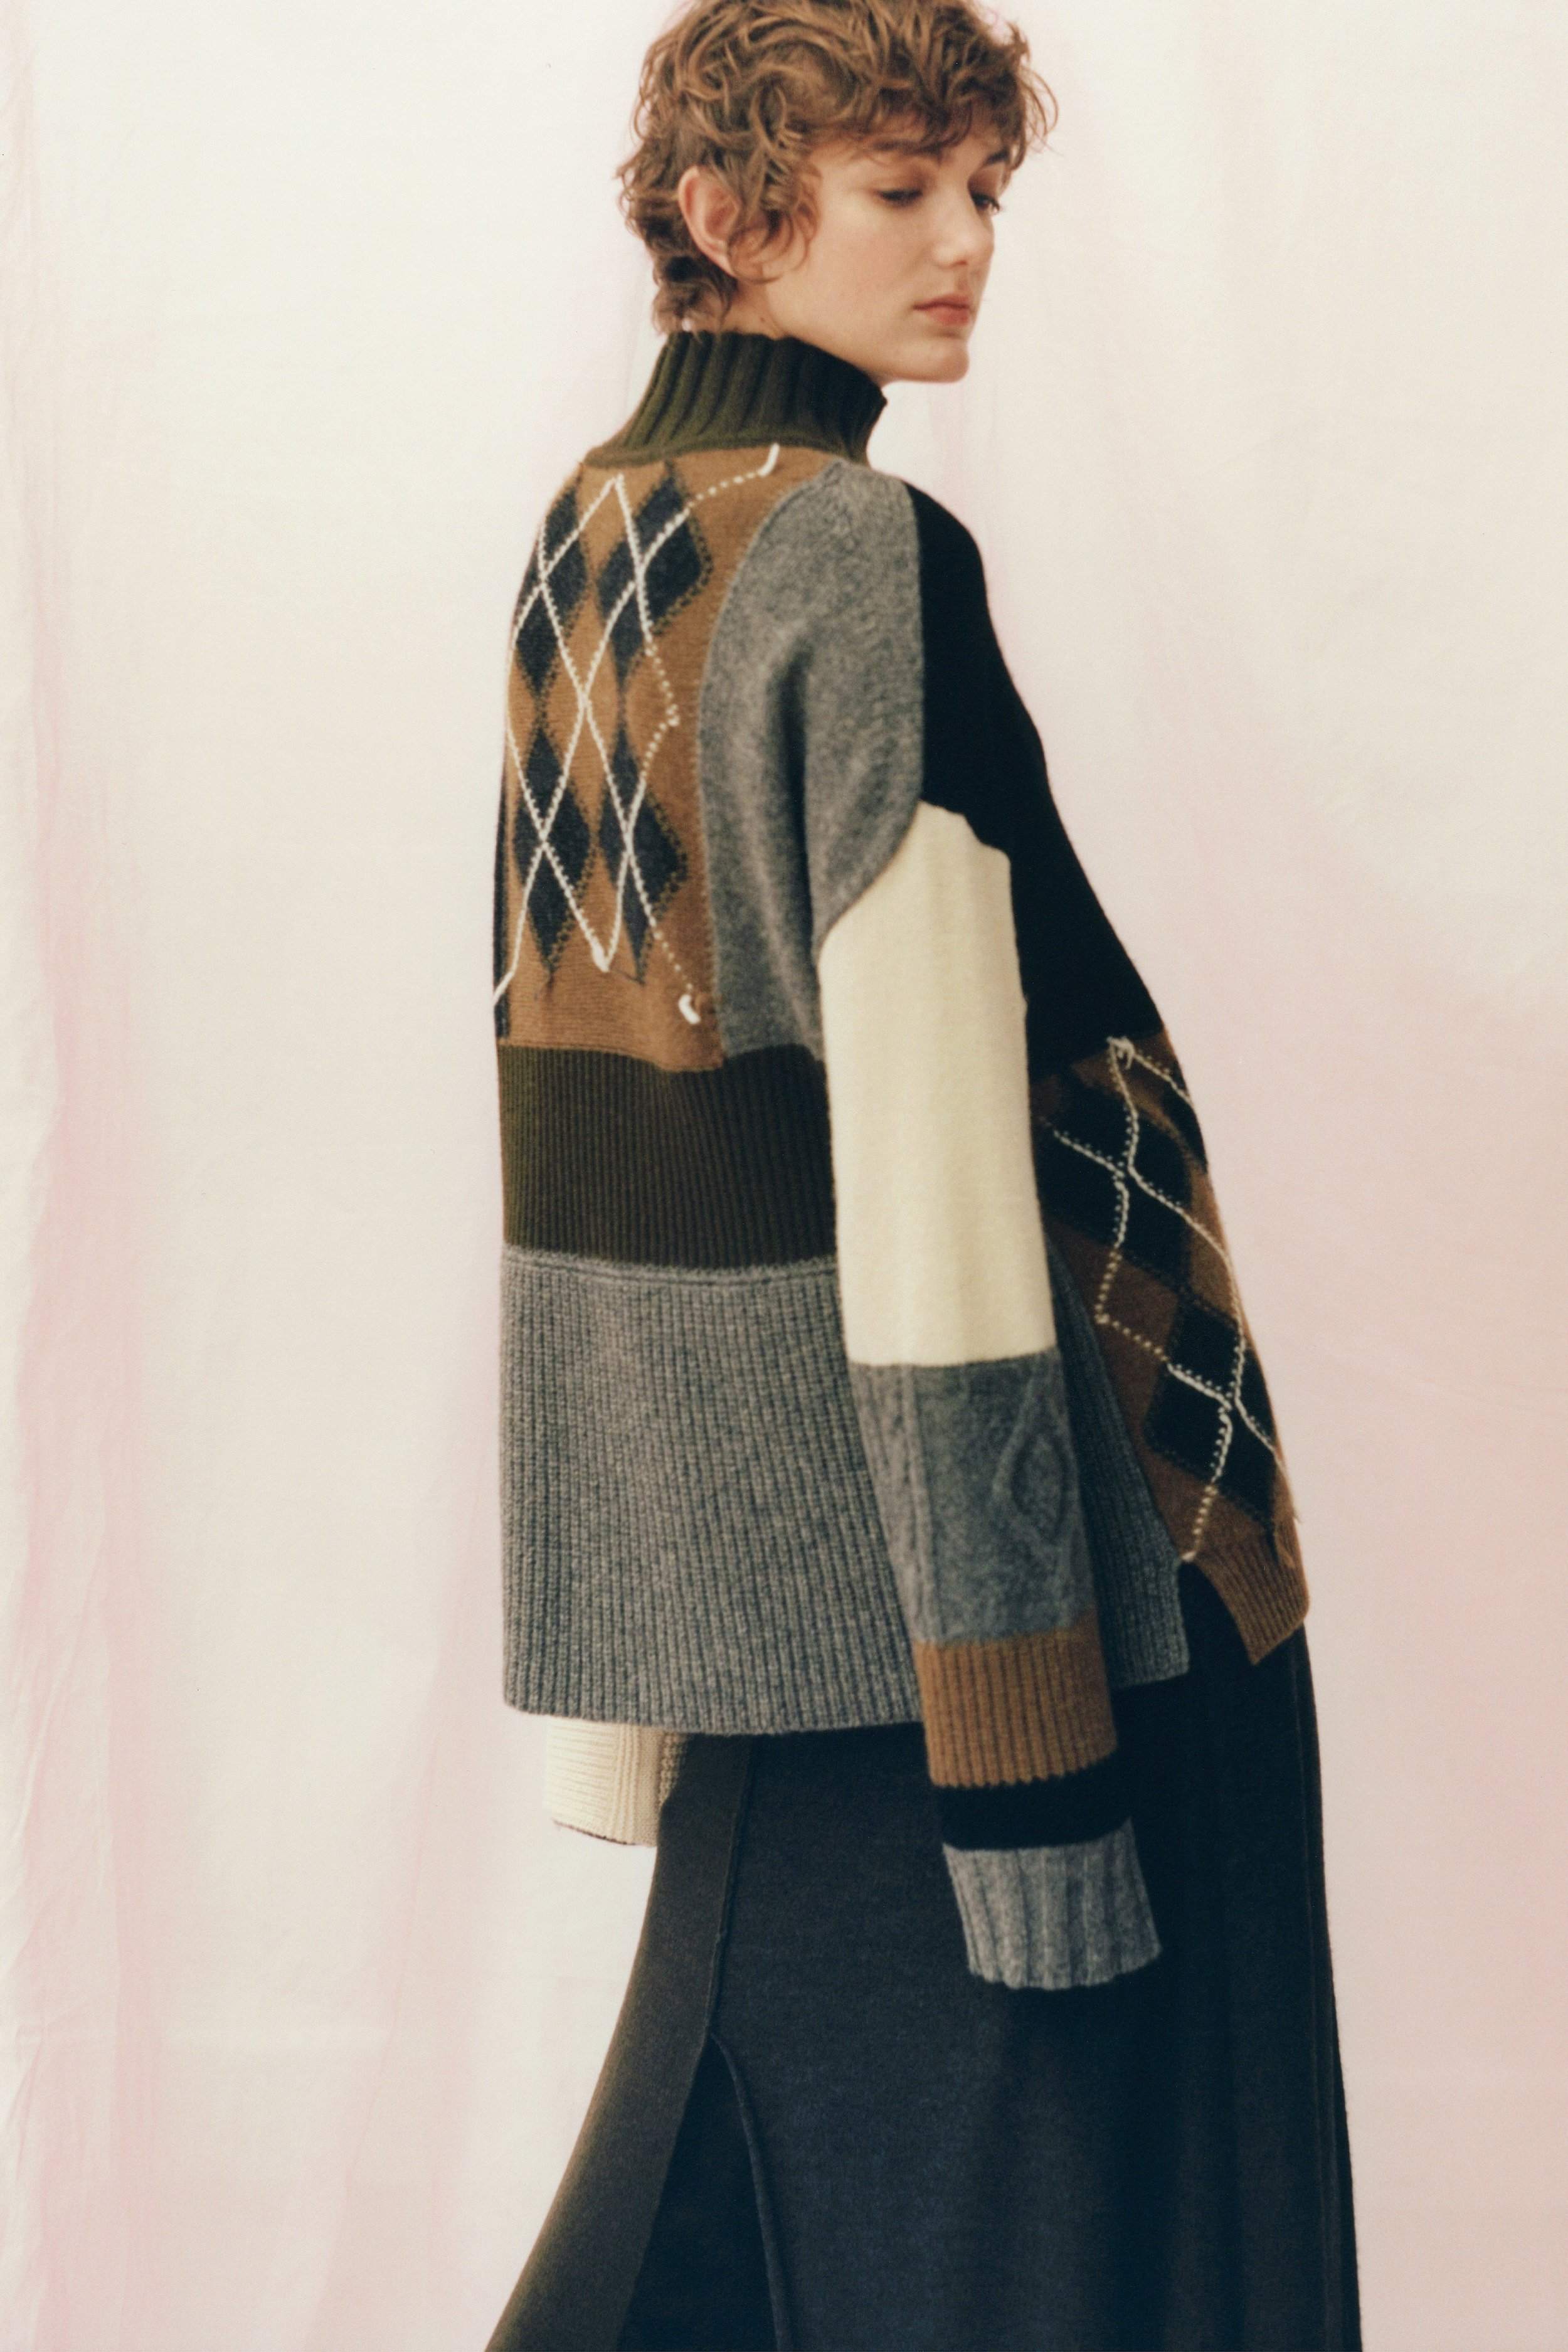 From the archives of Pringle of Scotland, classic patterns are woven together to form this vintage patchwork sweater.